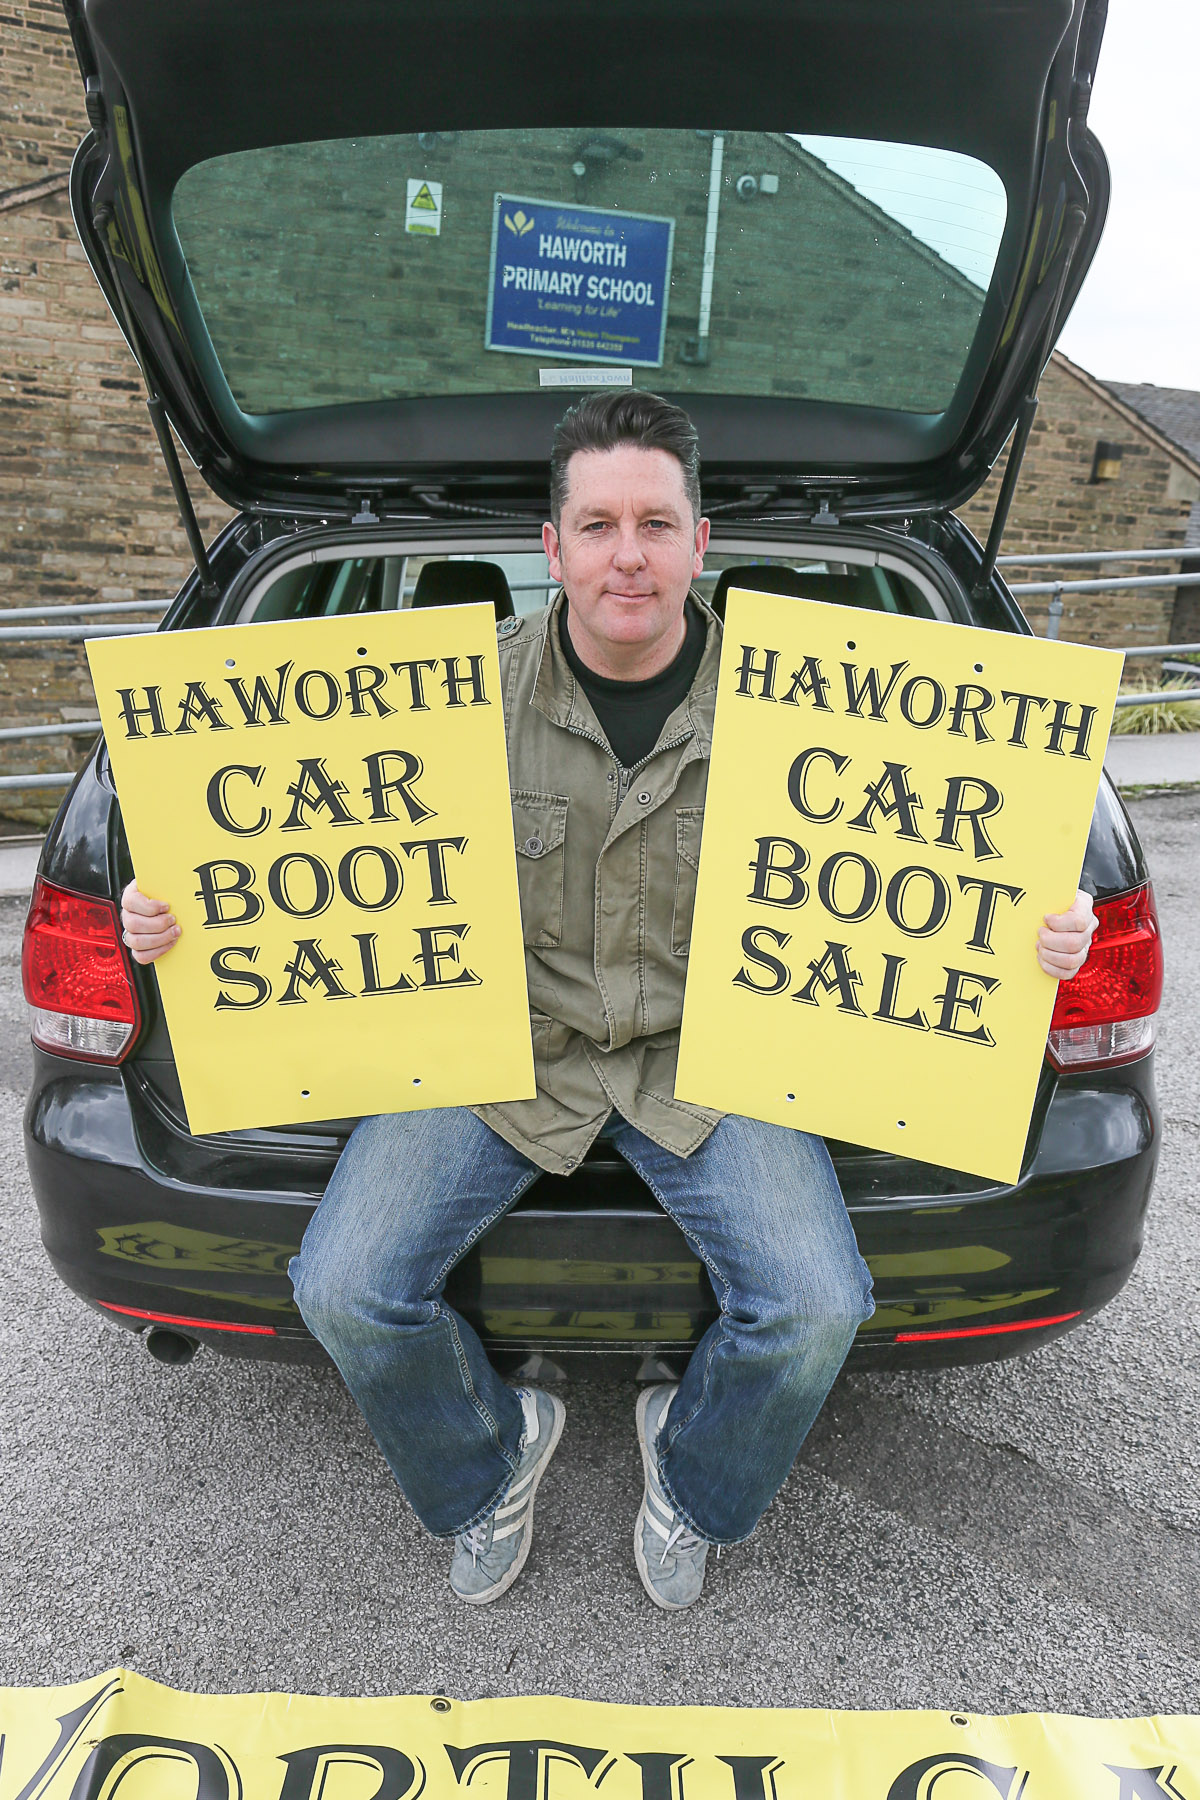 Bargains on offer at Haworth car boot sale